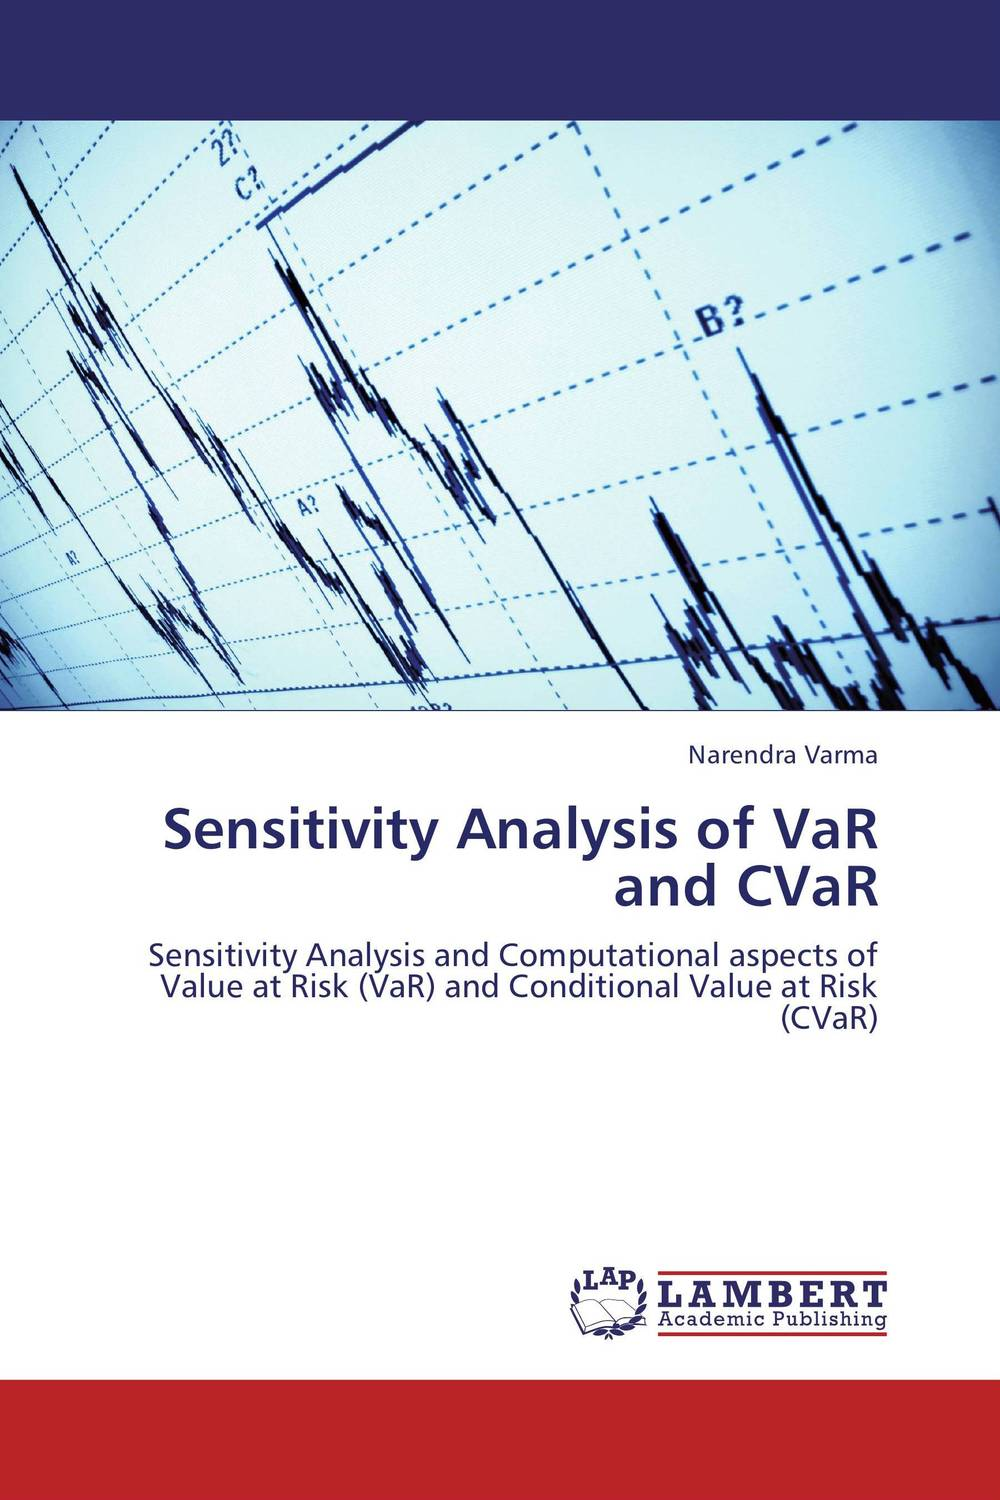 Sensitivity Analysis of VaR and CVaR michael rees business risk and simulation modelling in practice using excel vba and risk